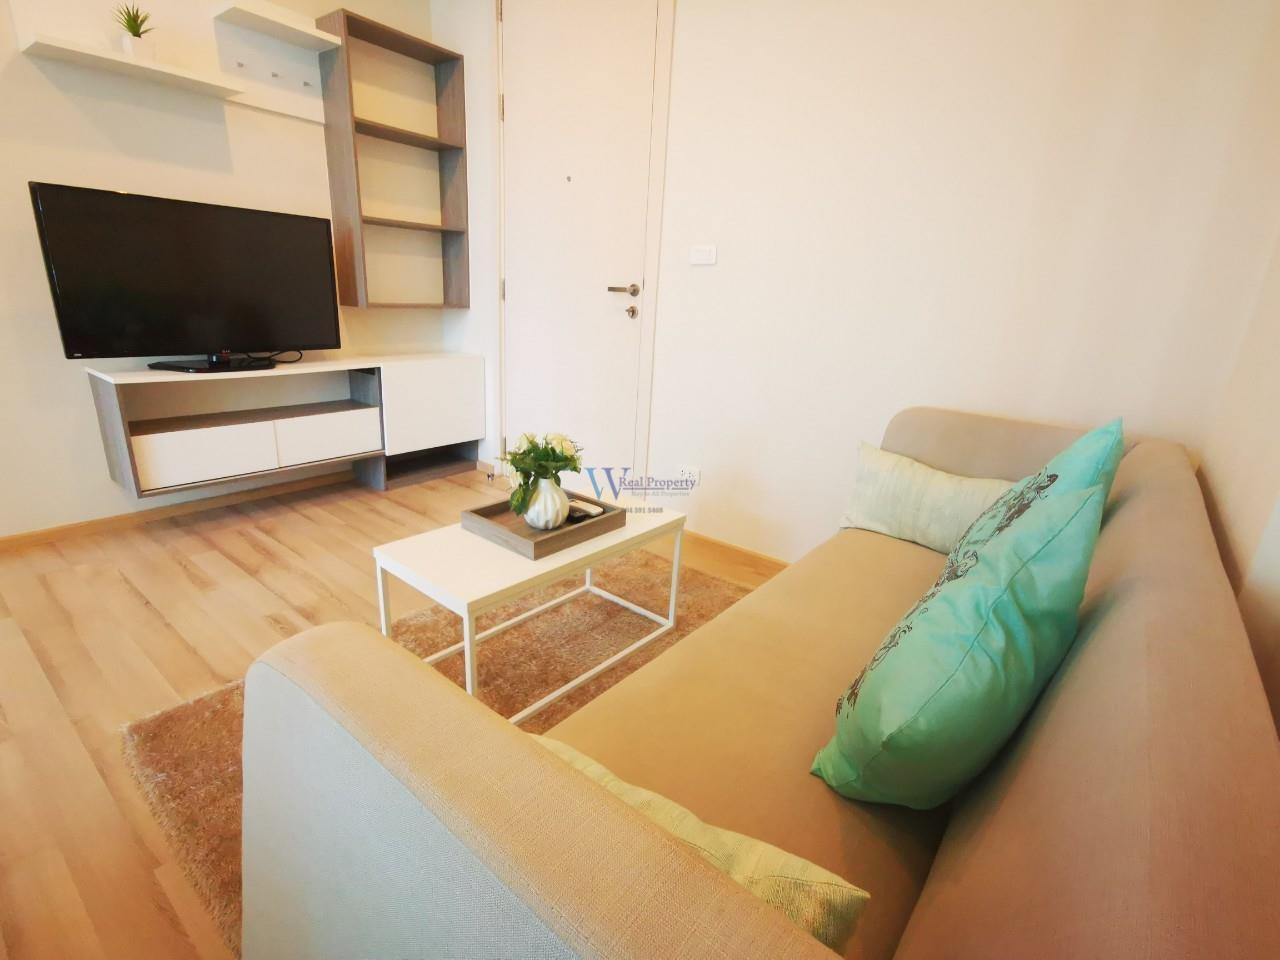 W Real Property Agency's 1 Bedroom Condo for rent in The Base Downtown Phuket, Wichit, Phuket 20